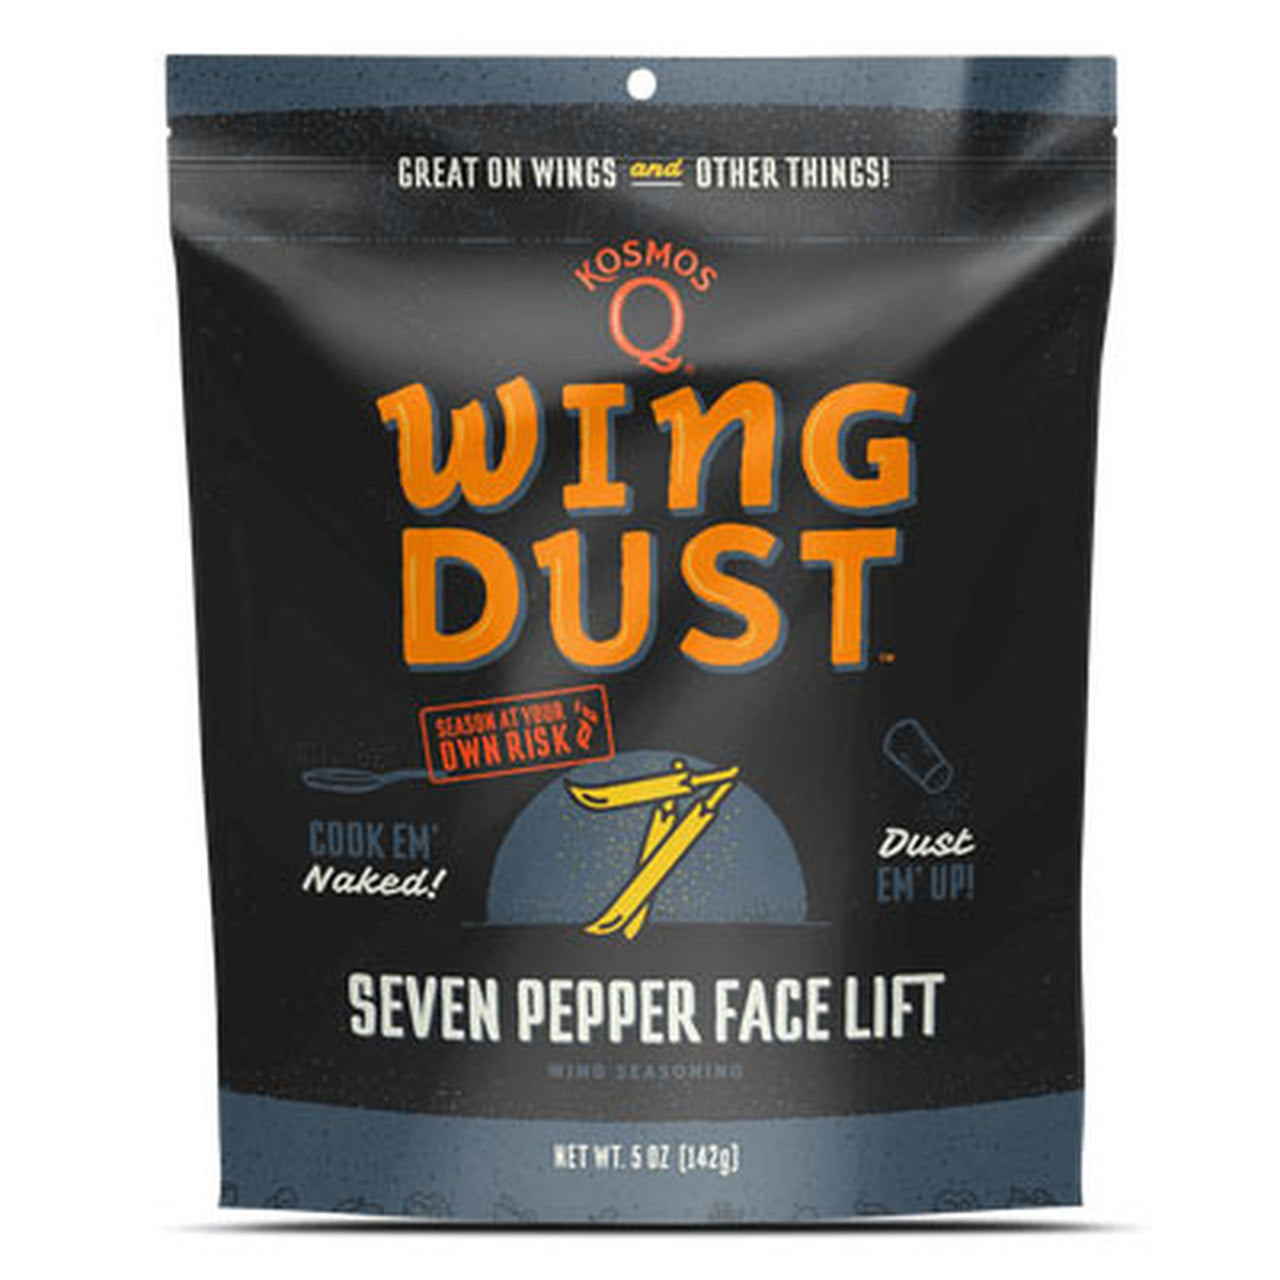 Kosmo's Q - Seven Pepper Face Lift Wing Dust